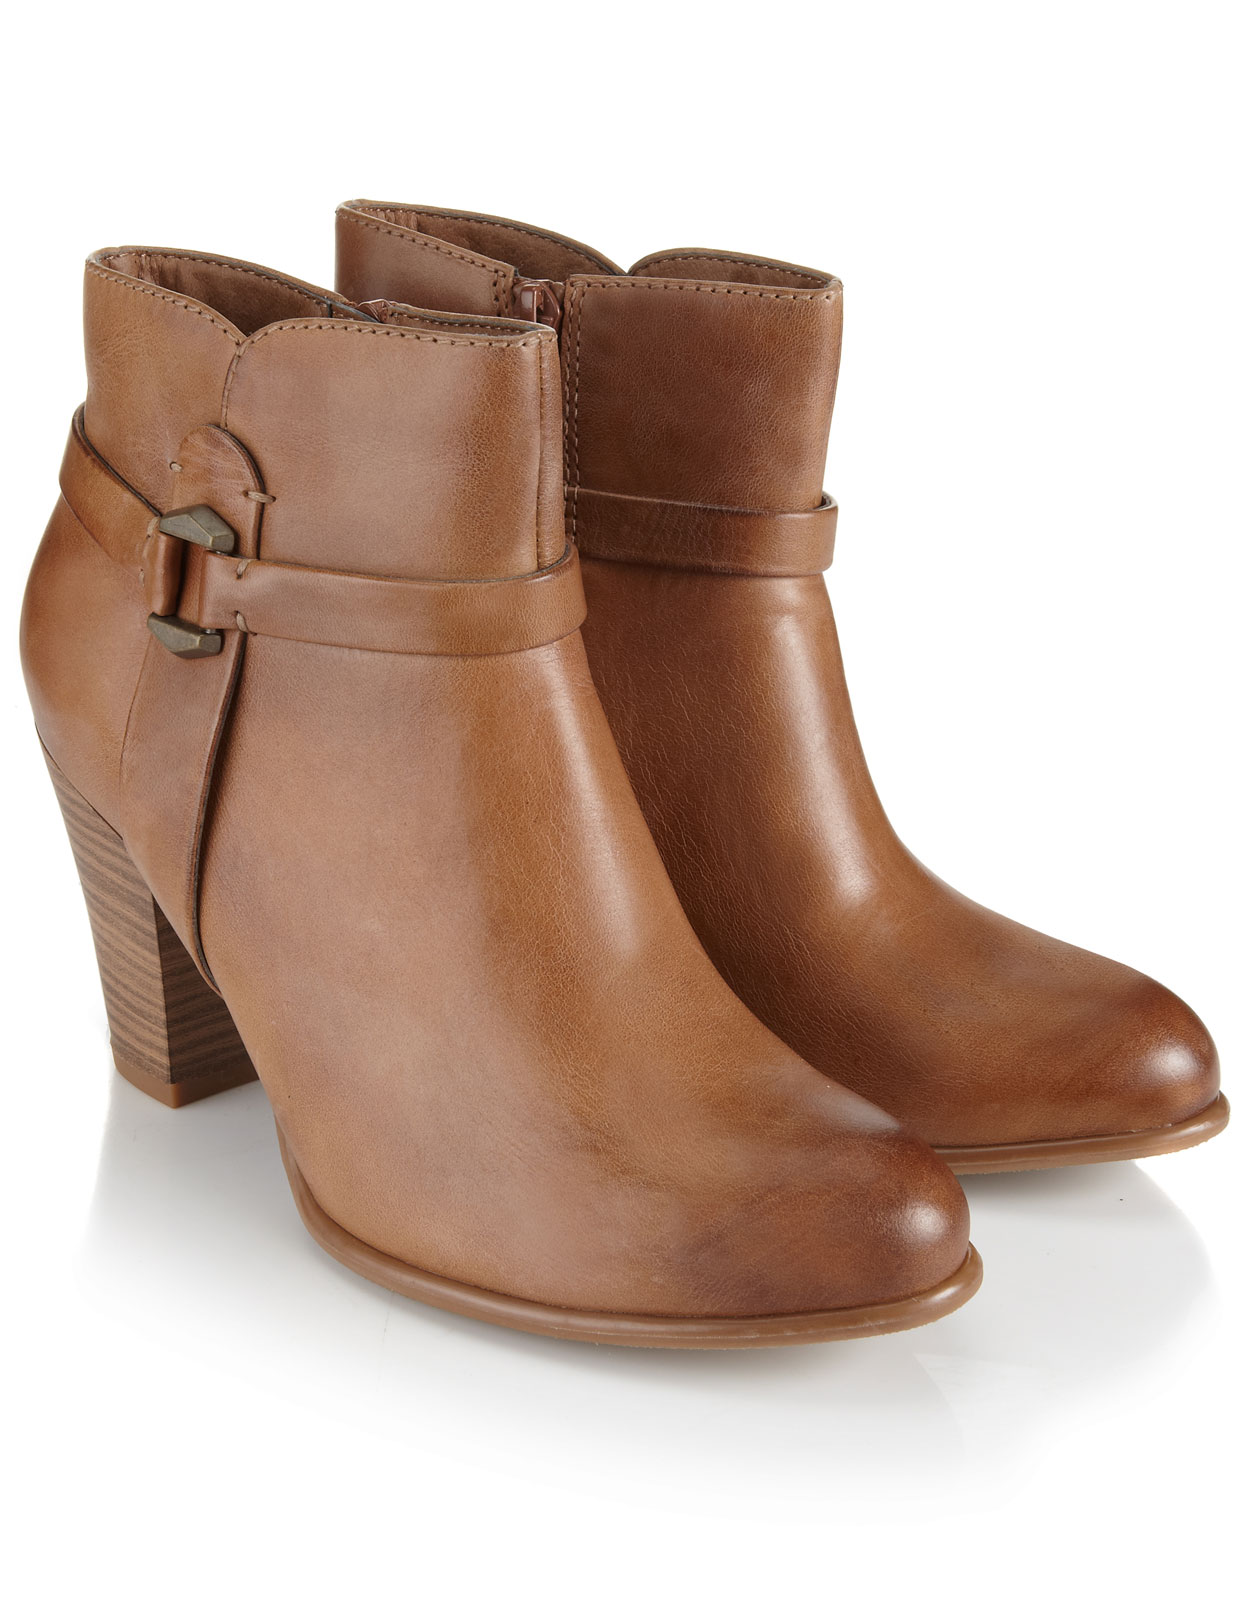 gallery images and information: brown ankle boots bzqcuad